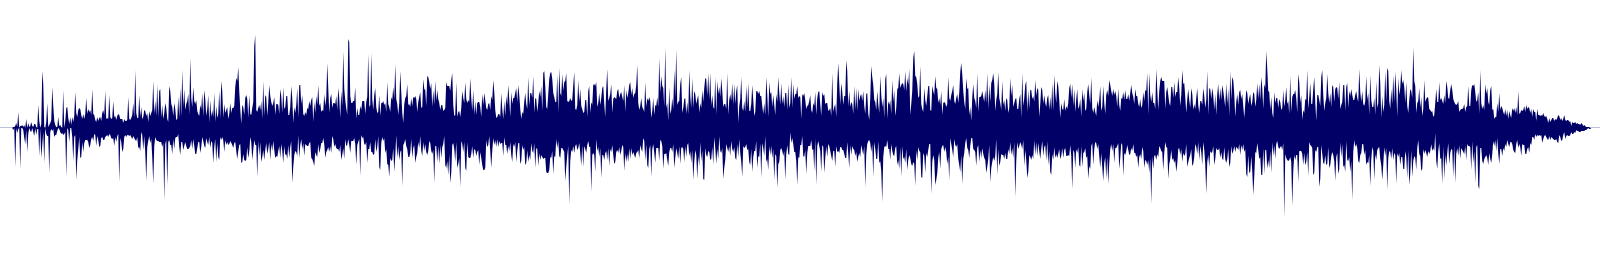 waveform of track #101410